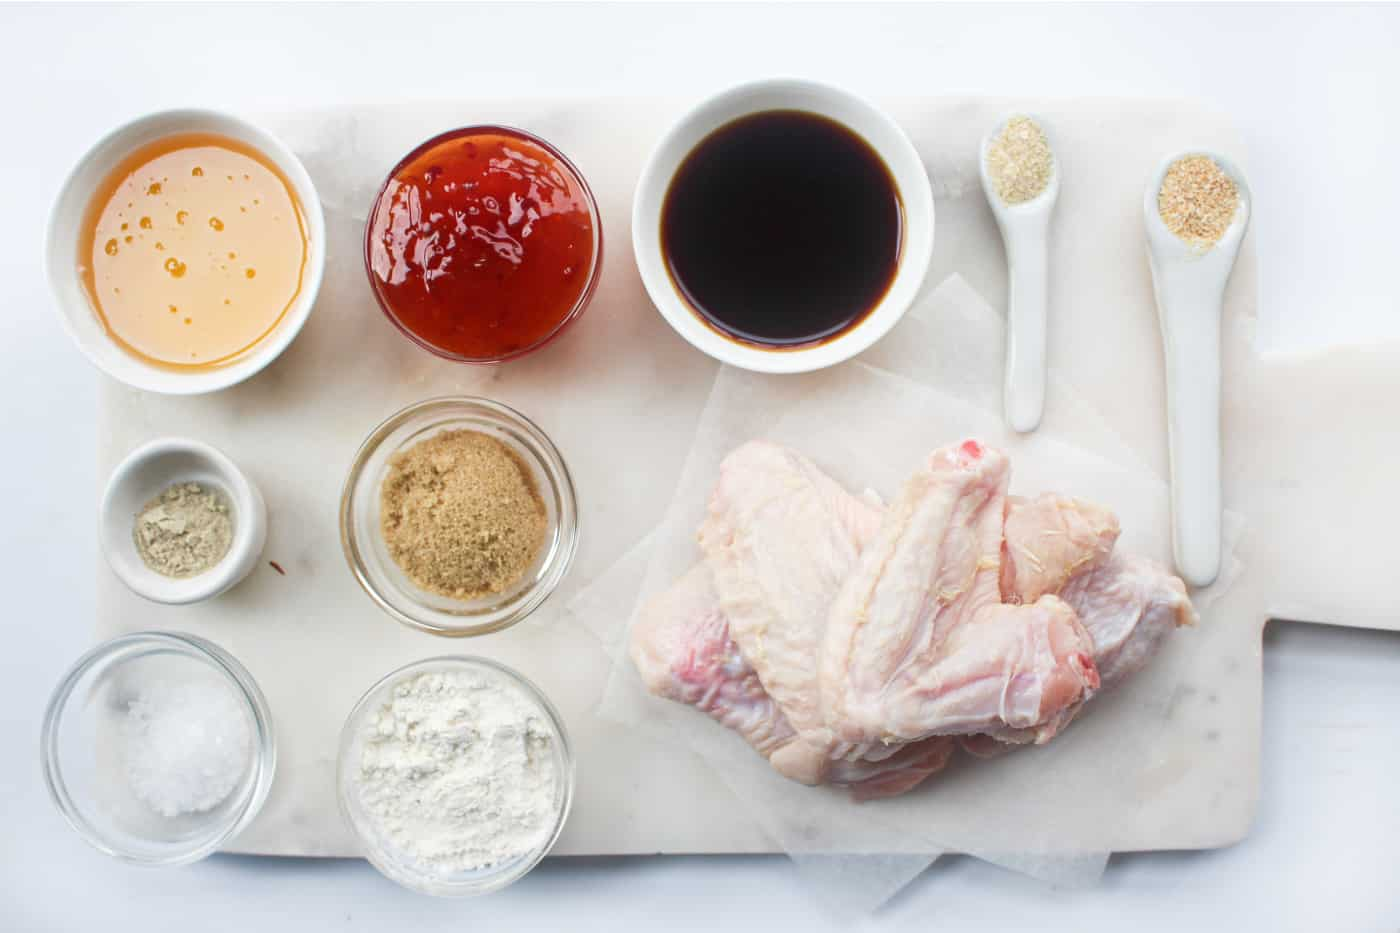 ingredients to make air fryer chicken wings on a table